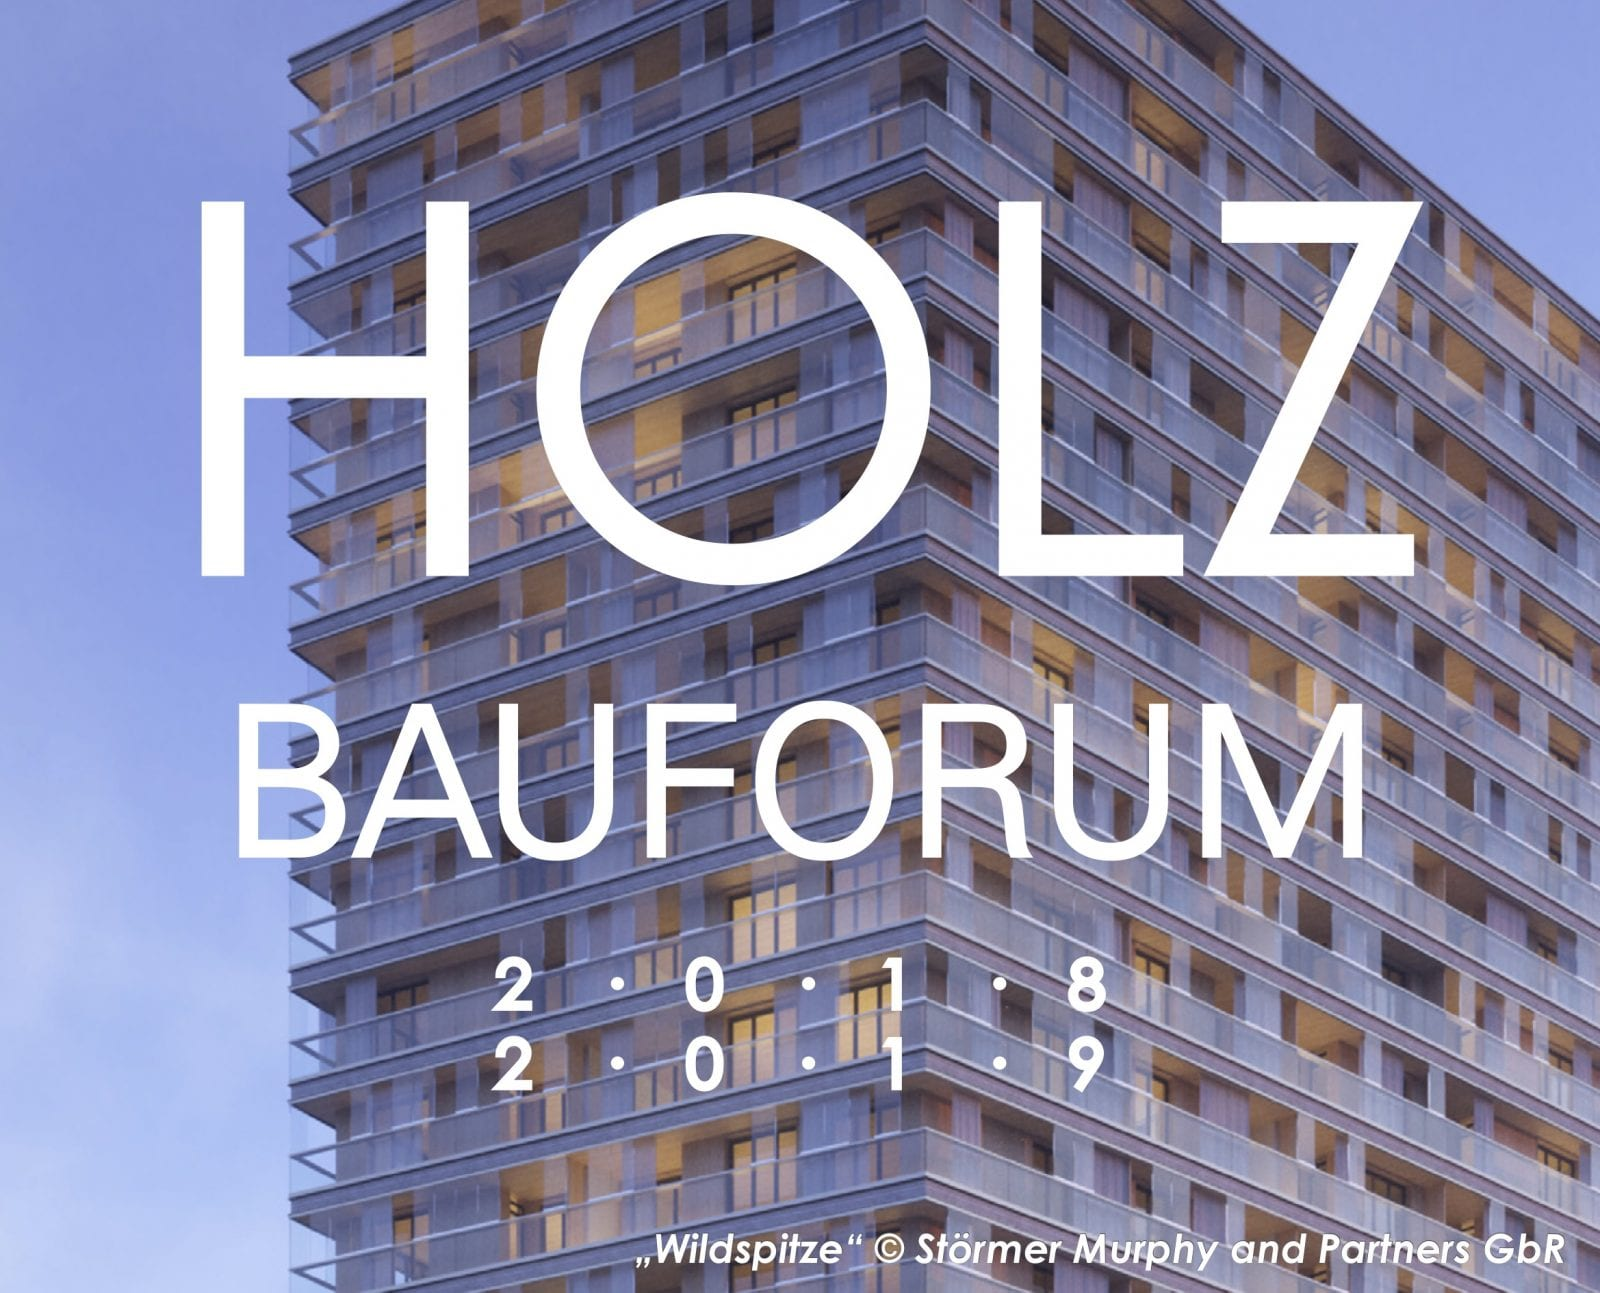 Hamburger Holzbauforum 2018/2019 (Abb.: Wildspitze / Störmer Murphy and Partners GbR)